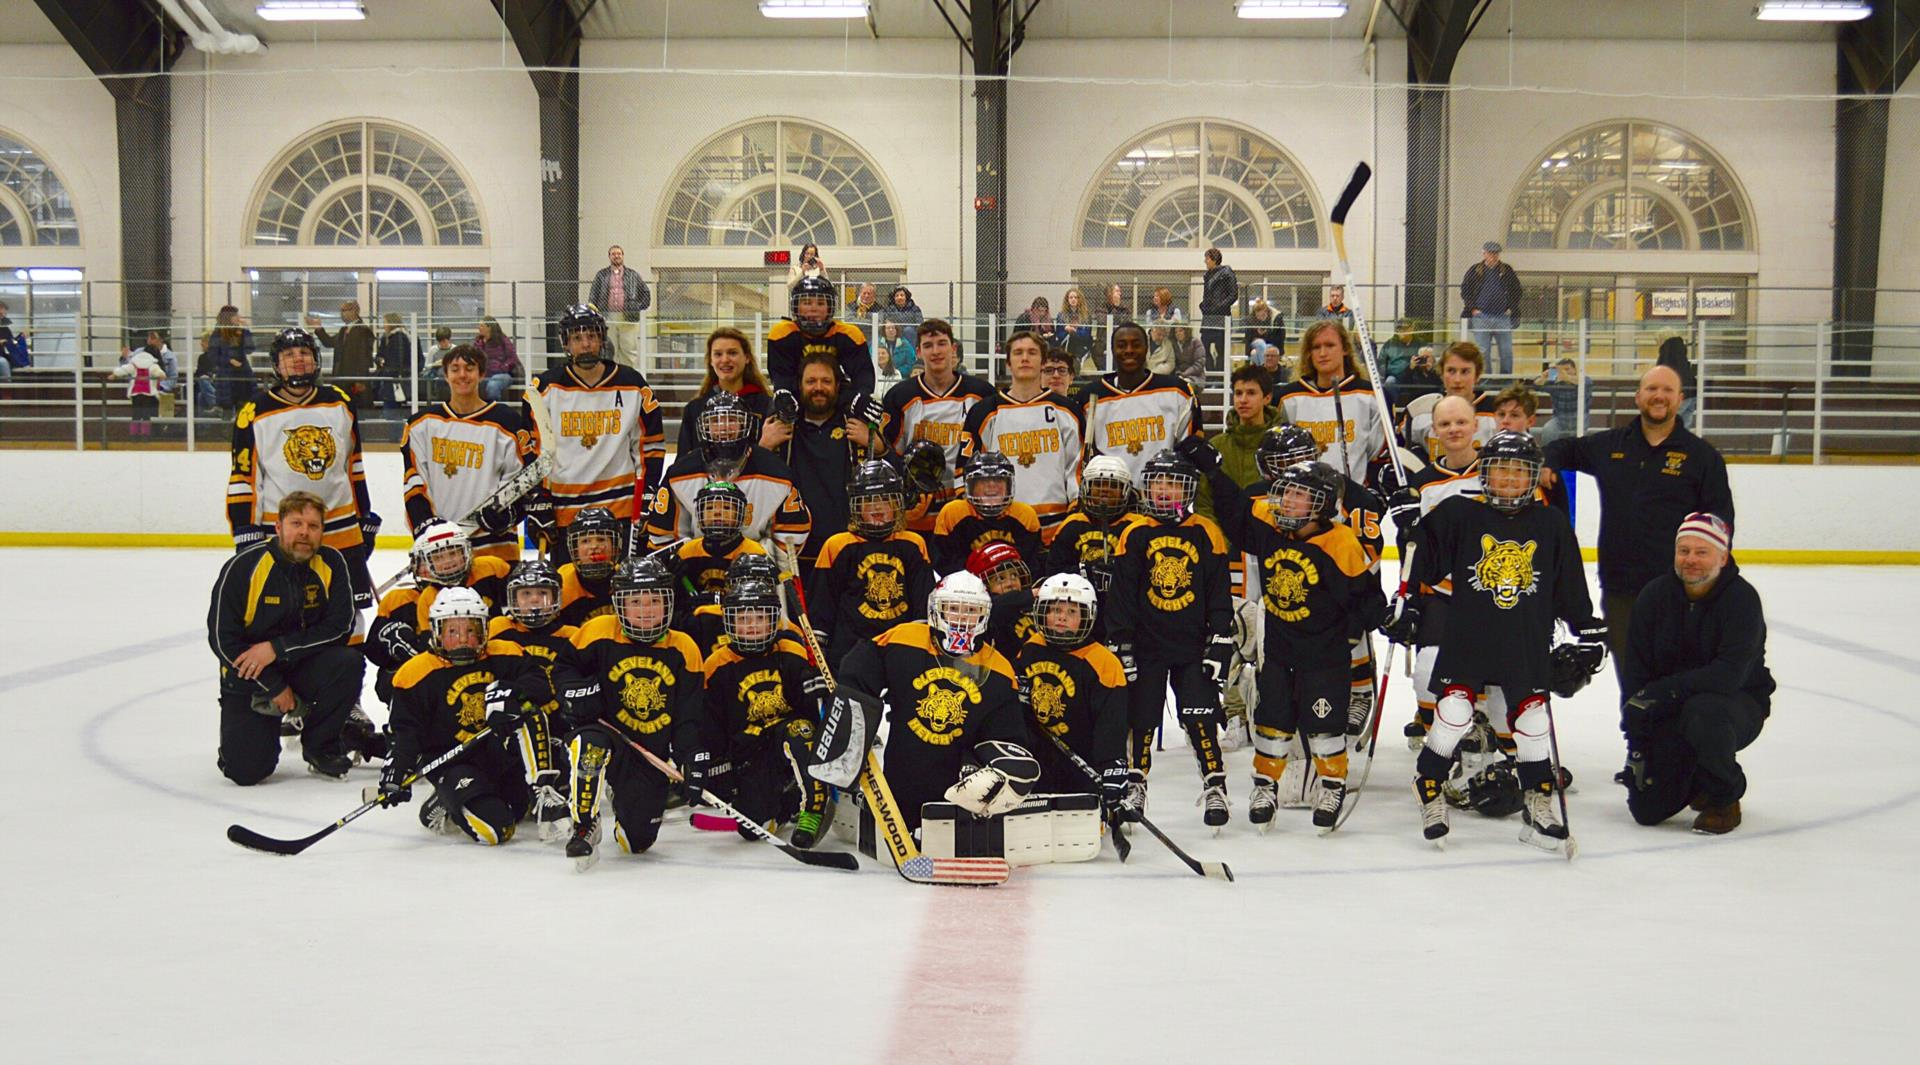 Group photo of Heights High hockey players and Mites players